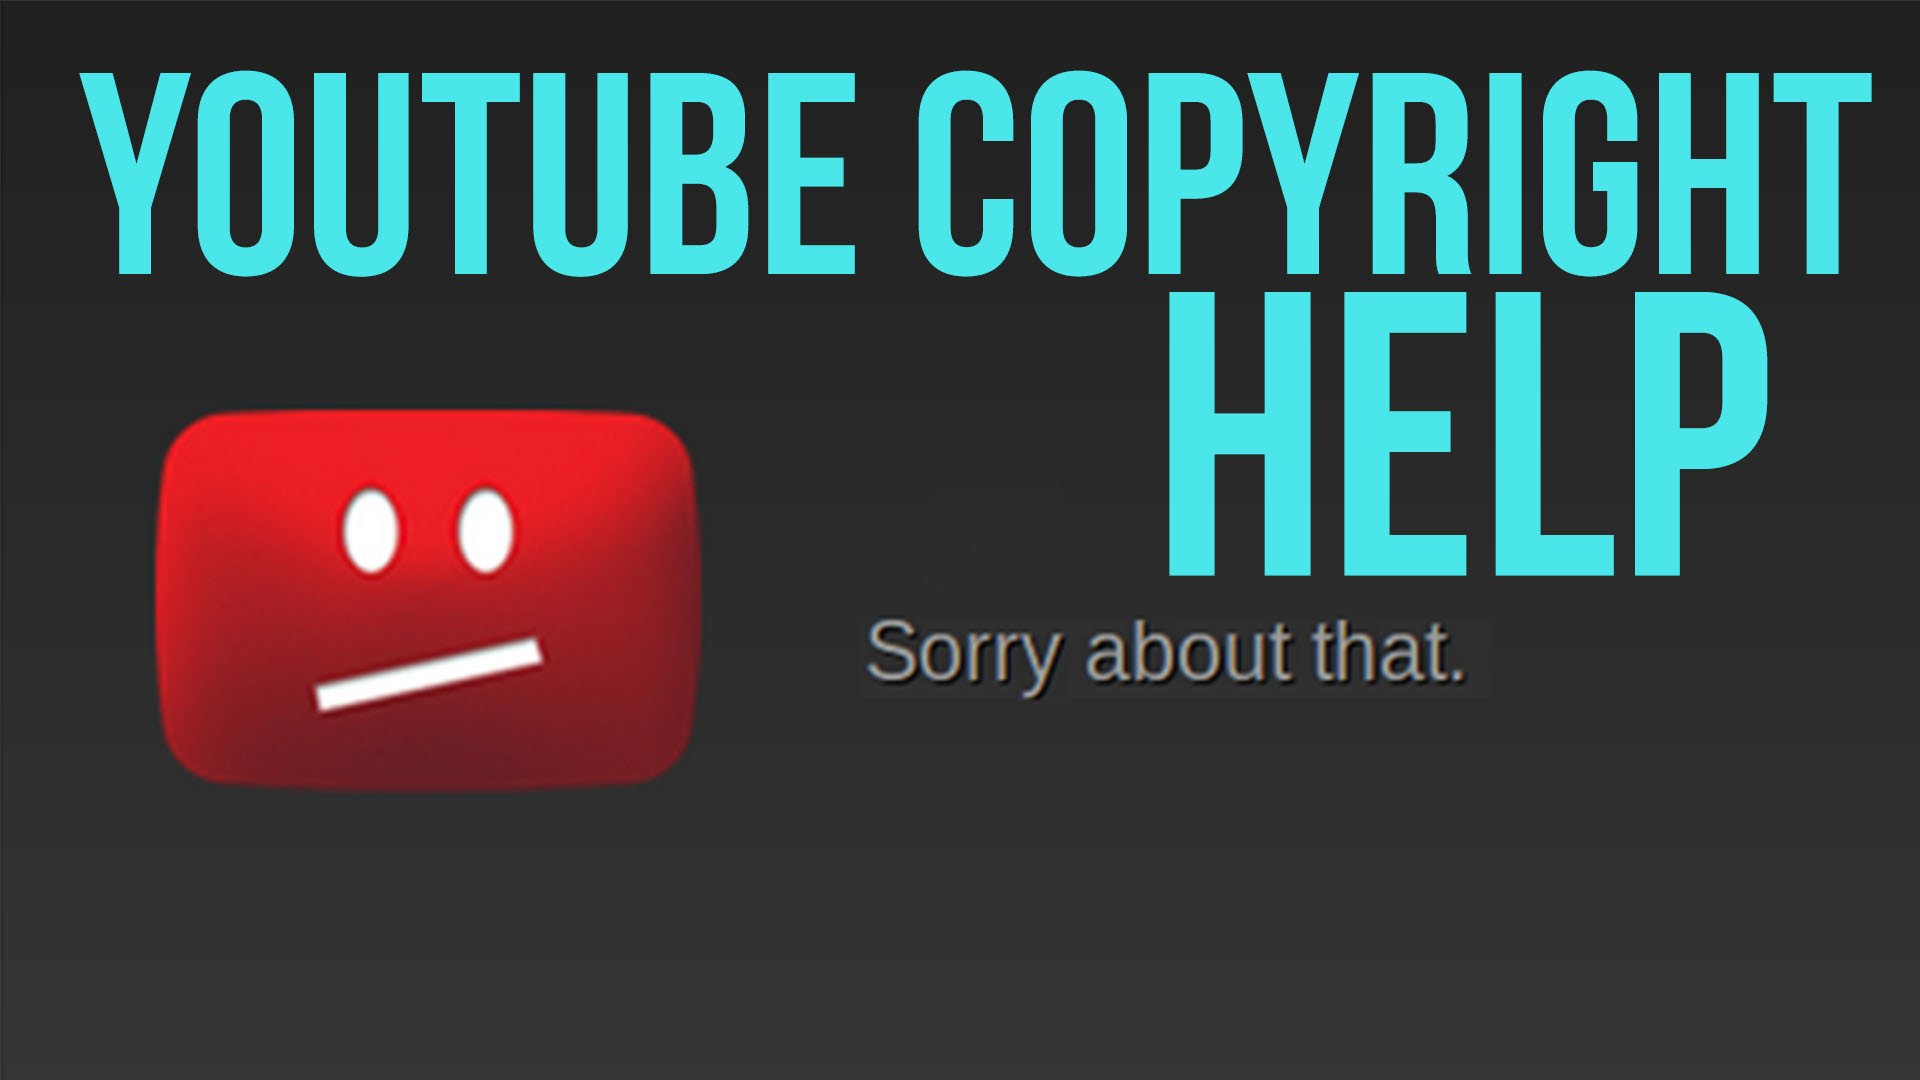 How to file a copyright infringement complaint on YouTube